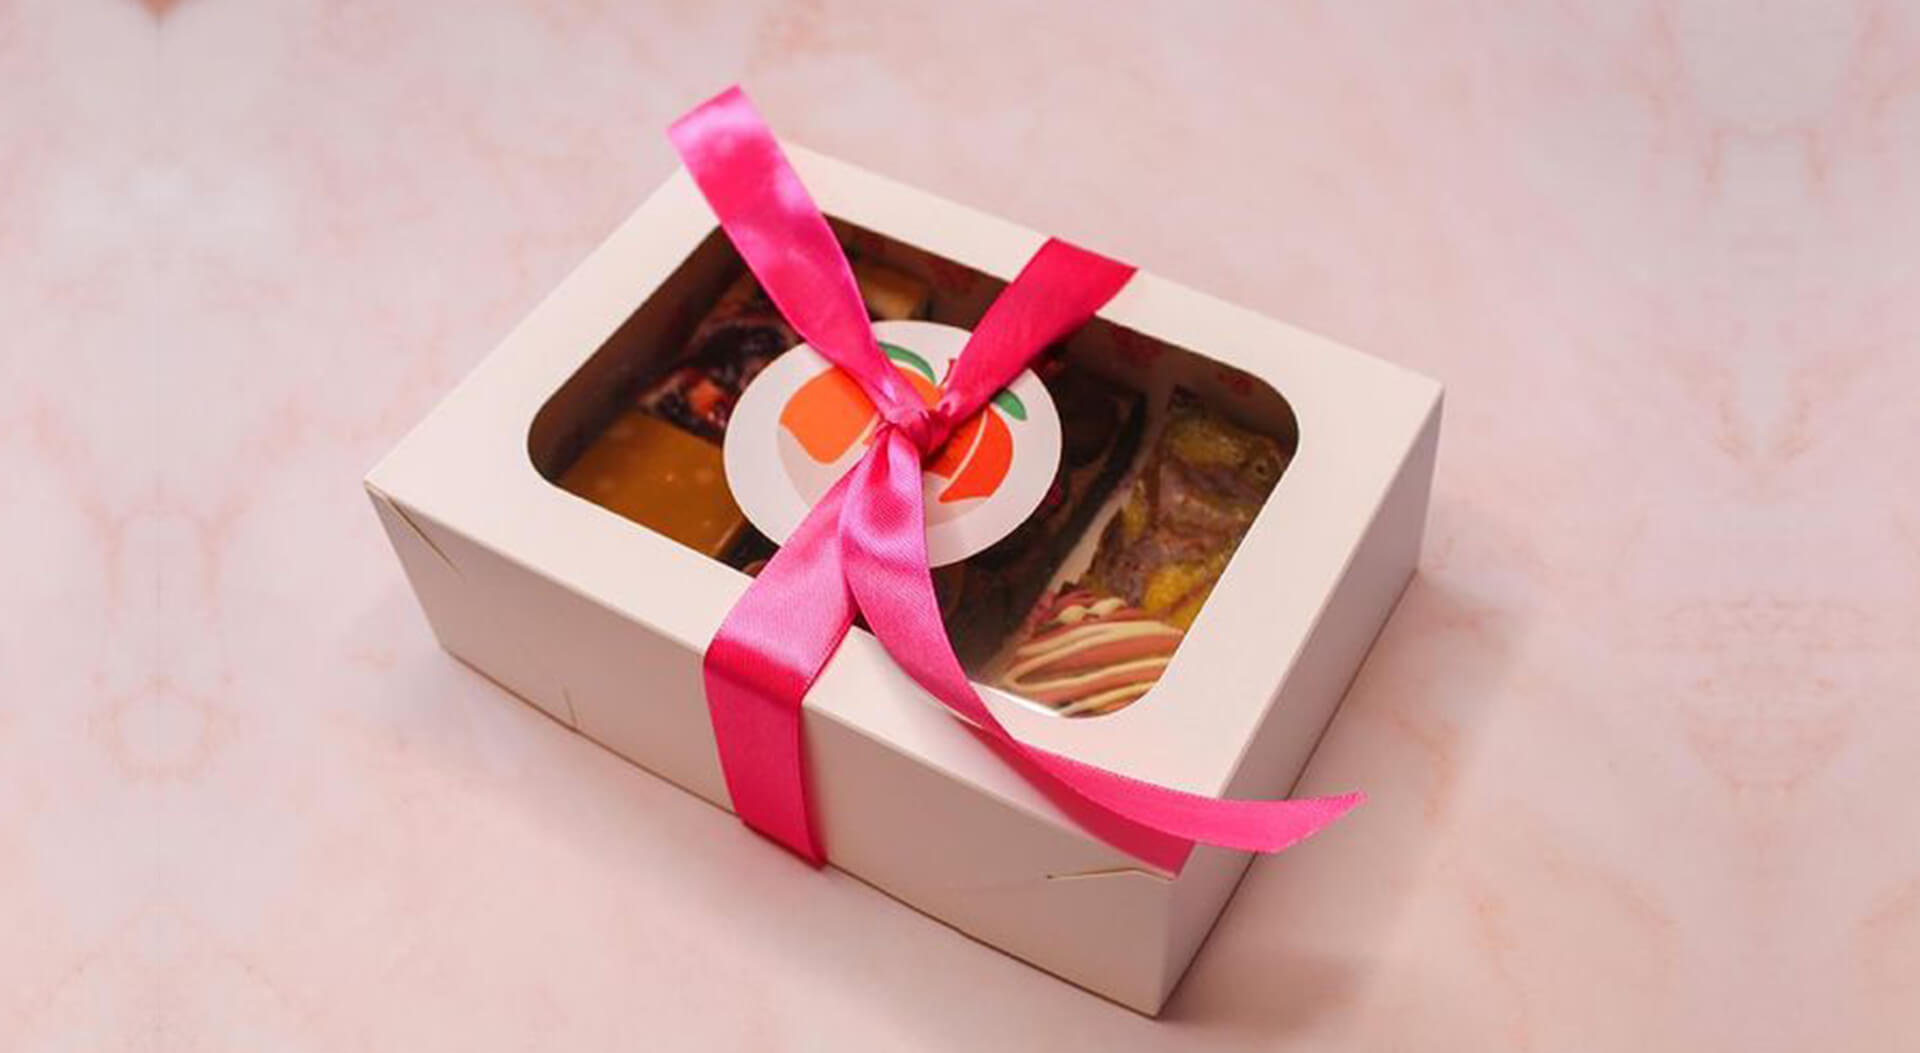 Peach Patisserie branded sticker and packaging cake box